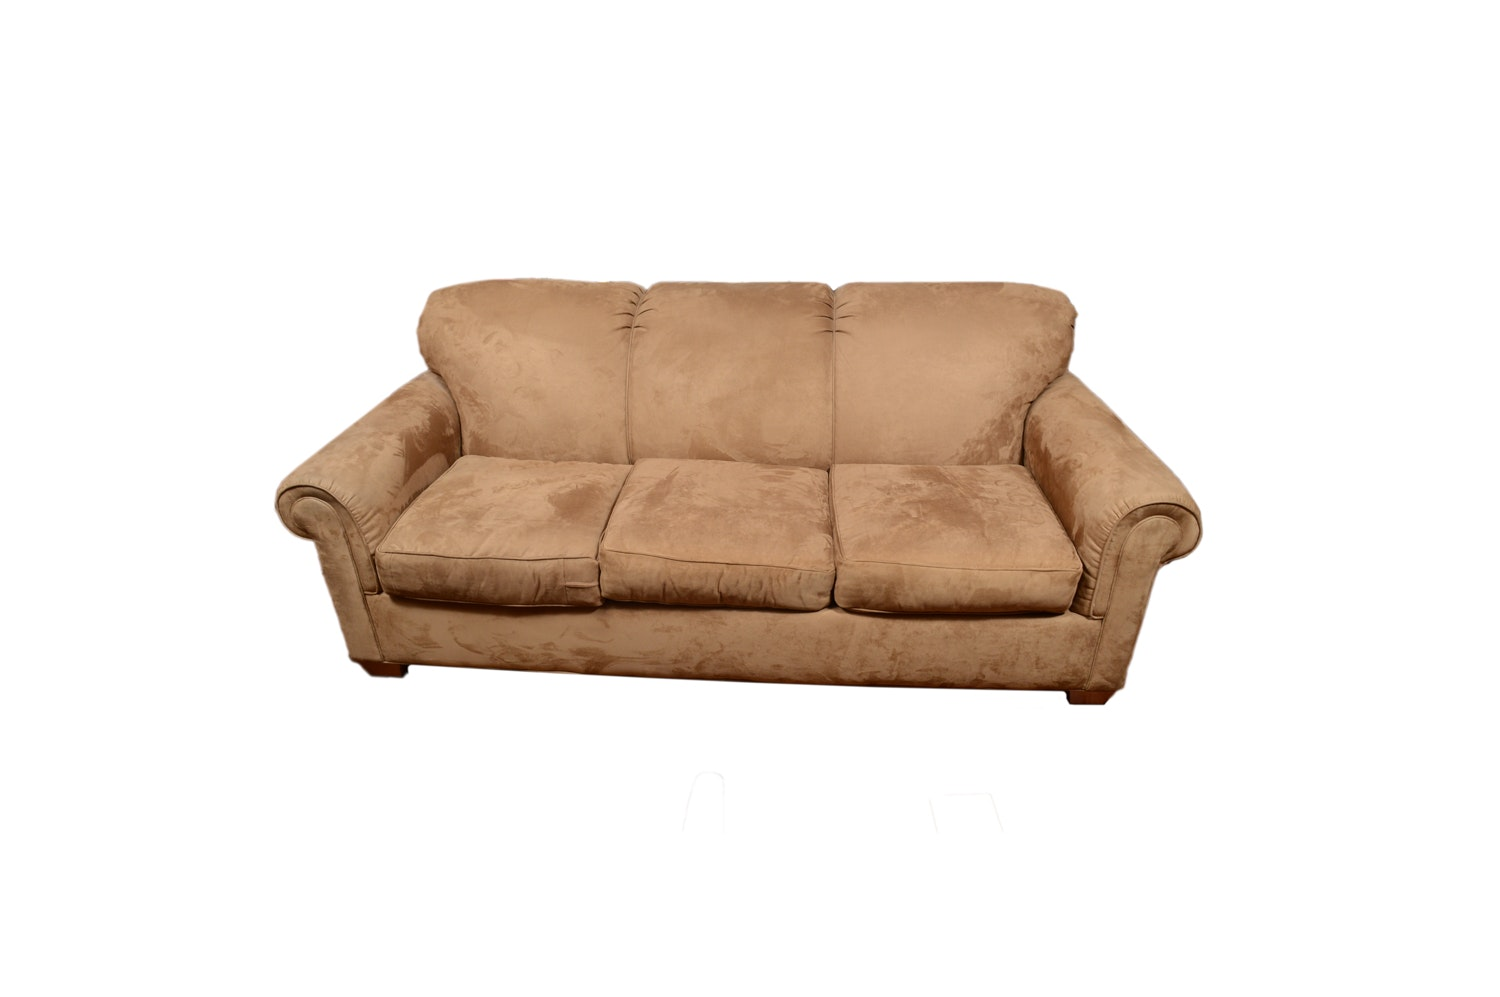 Tan Faux Suede Sofa by Rowe Furniture